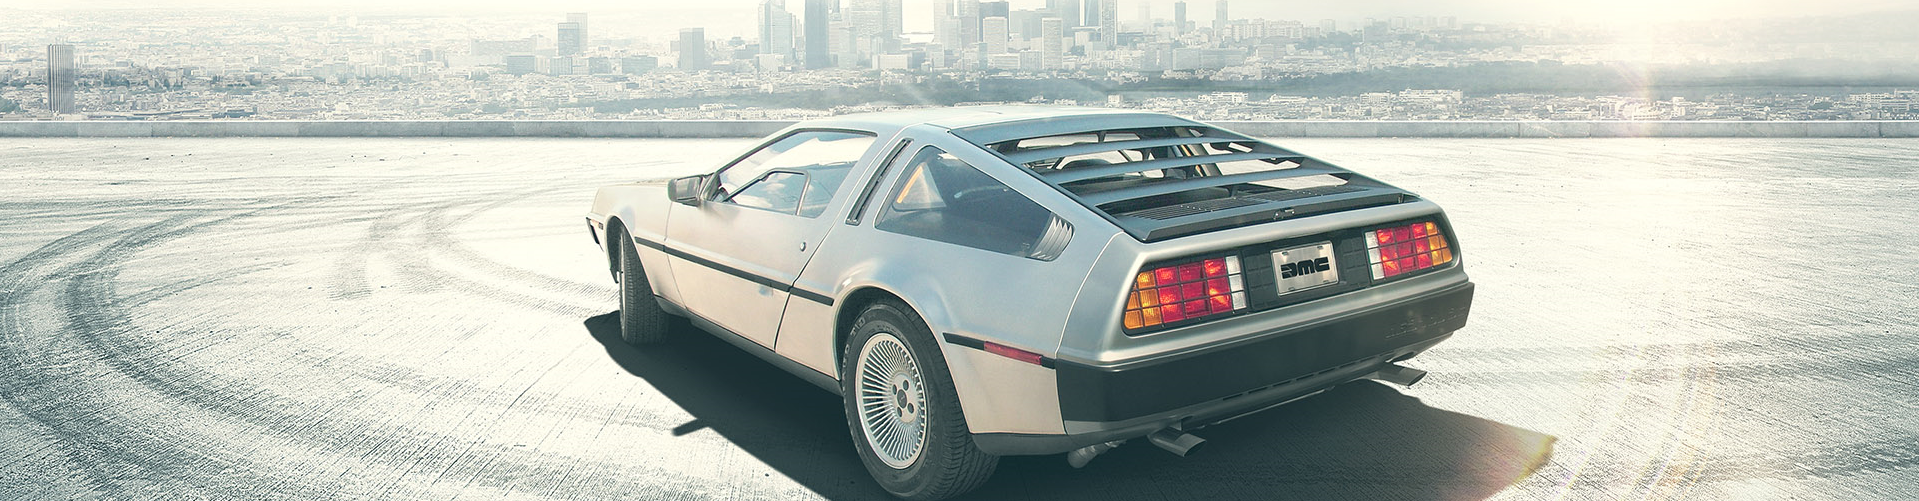 Some legends just refuse to come to an end, which is definitely the case for the DeLorean DMC-12 that is now slated to go back into production in early 2017. Simply put, the DeLorean was just ahead of its time and deserving of a second chance. The DeLorean Motor Company based out of Humble, Texas plans to build 300 examples of the famed car that was originally in production from 1981 – 1983 with only 8,583 examples ever produced.